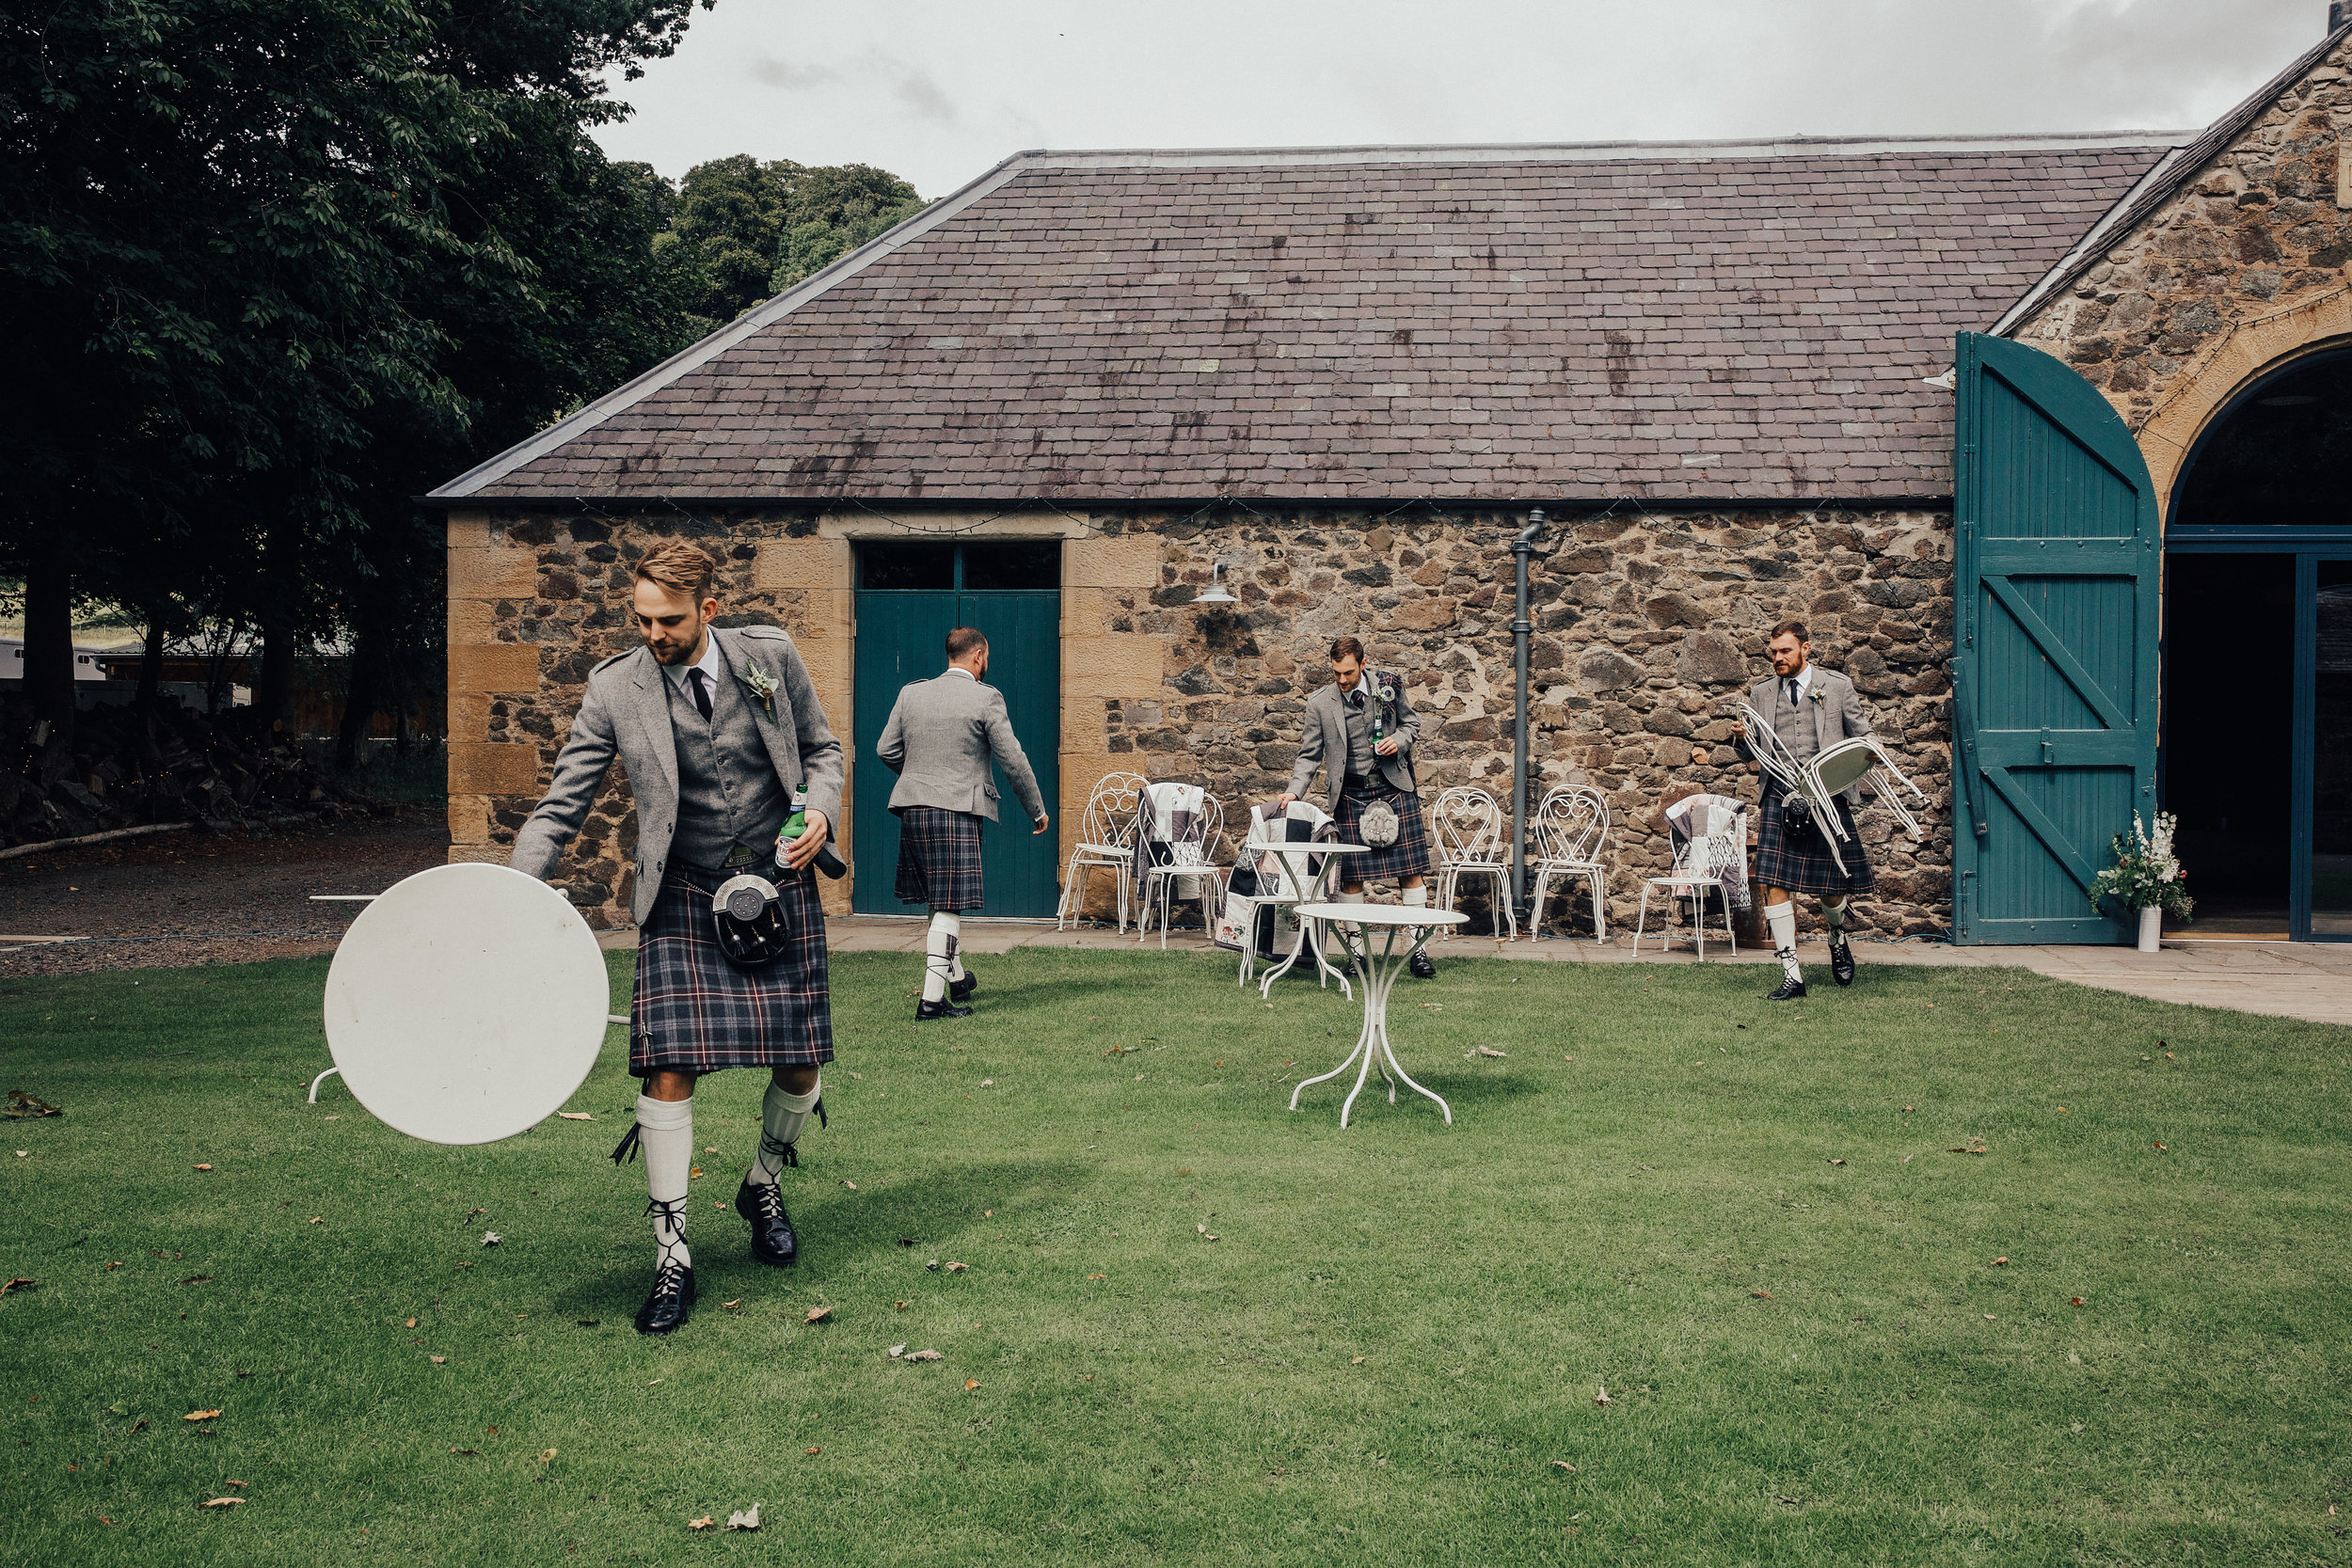 BYRE_AT_INCHYRA_WEDDING_PHOTOGRAPHER_PJ_PHILLIPS_PHOTOGRAPHY_KAYLEIGH_ANDREW_53.jpg